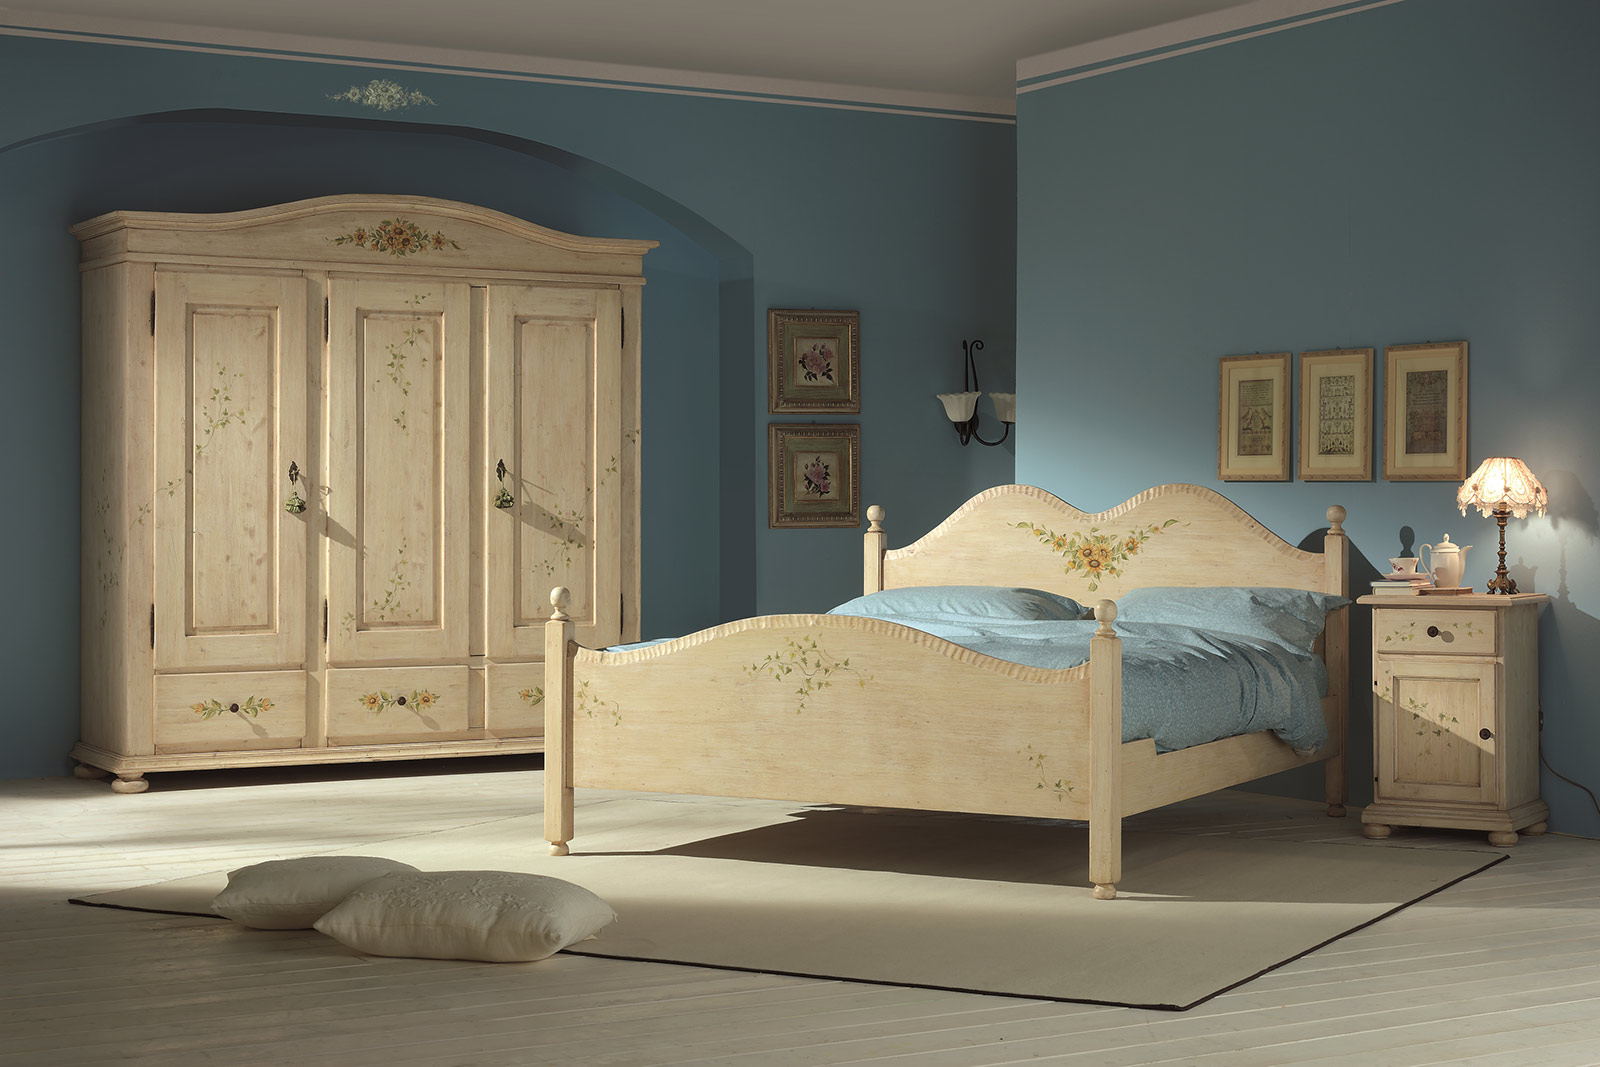 Letto matrimoniale country sv39 pineglen for Londi e gradi arredamenti